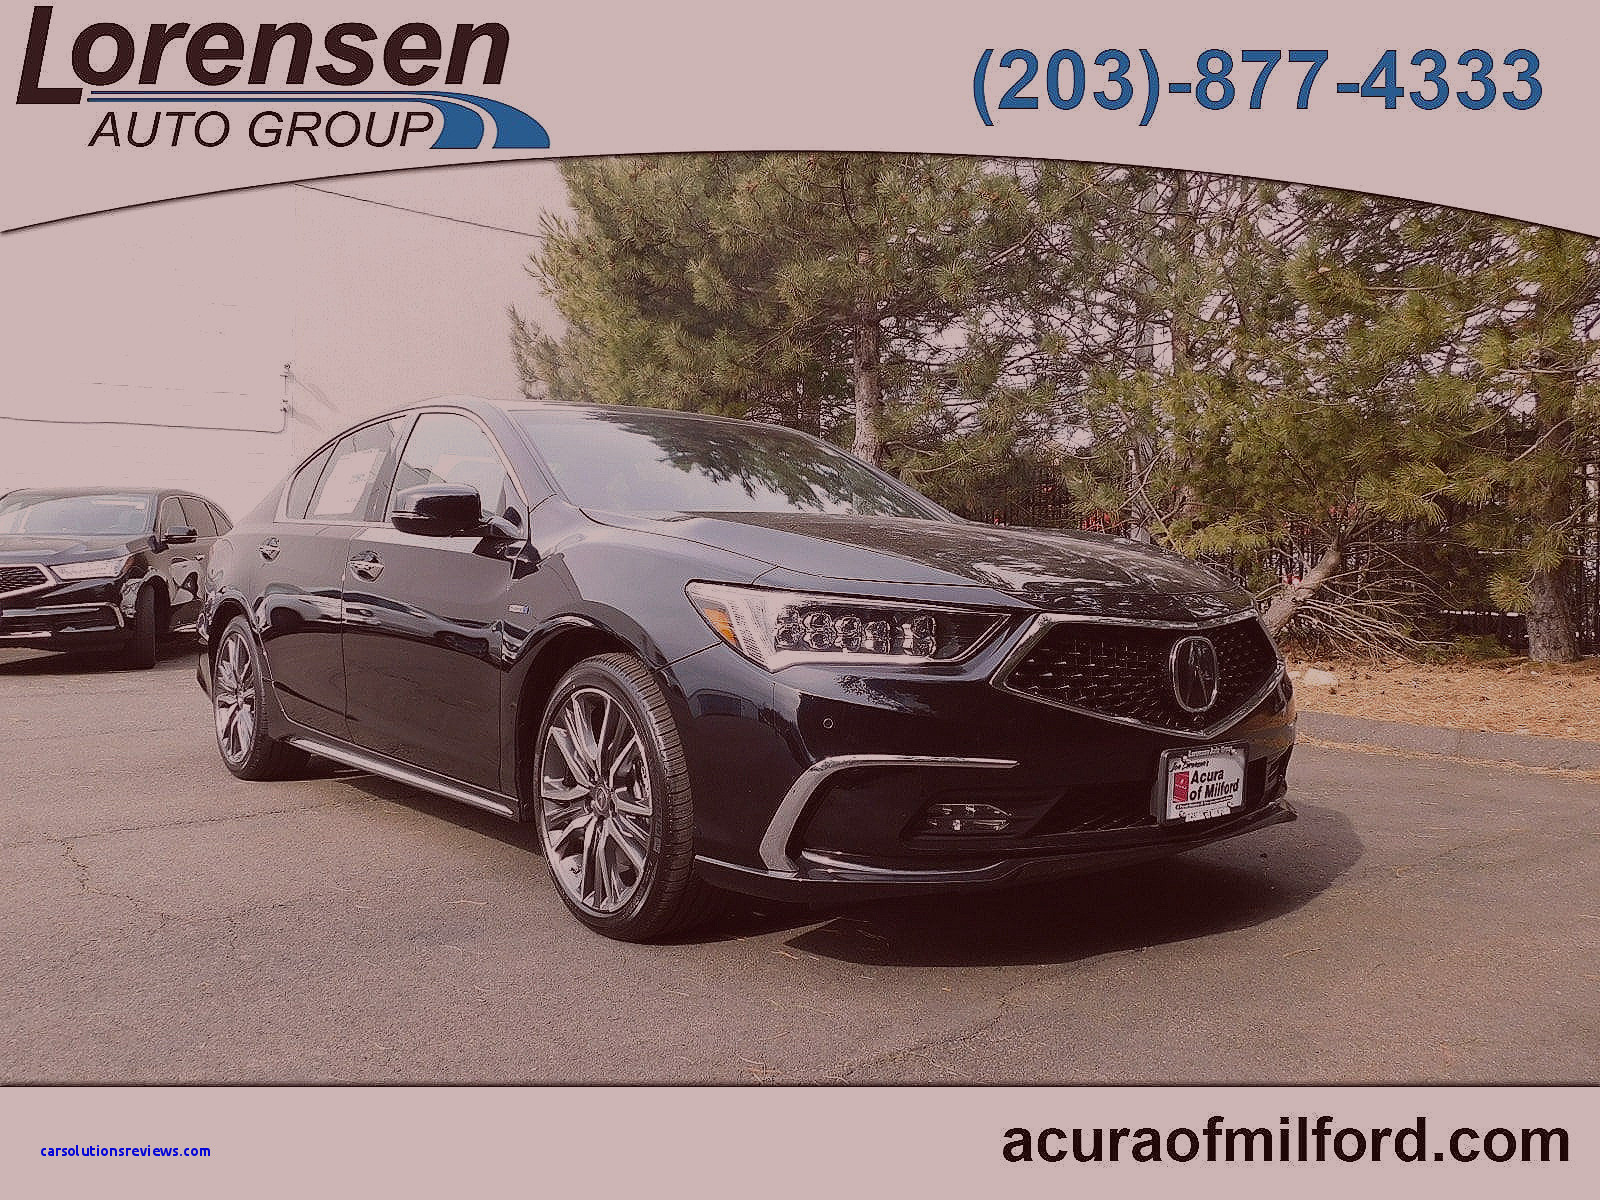 monroe auto sales acura warwick fresh ricks ri auto sales used cars west warwick ri of